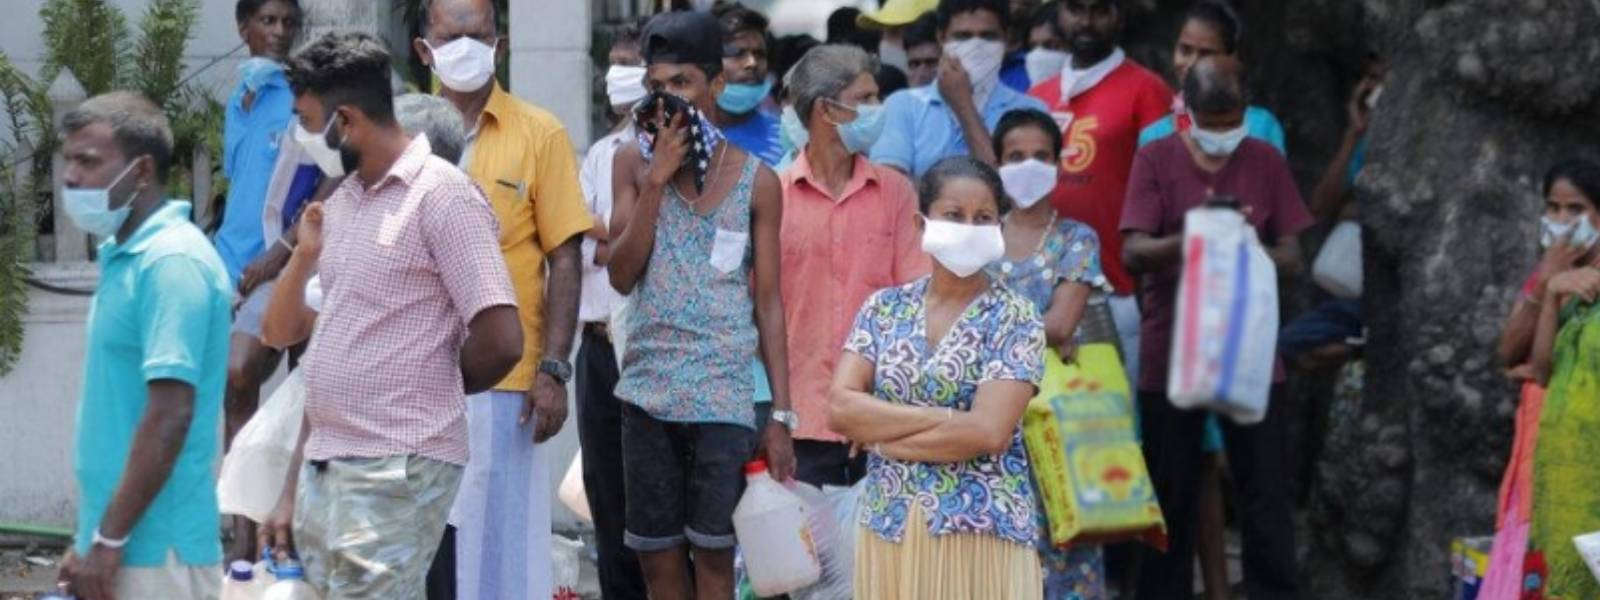 People urged to reserve masks for healthcare workers